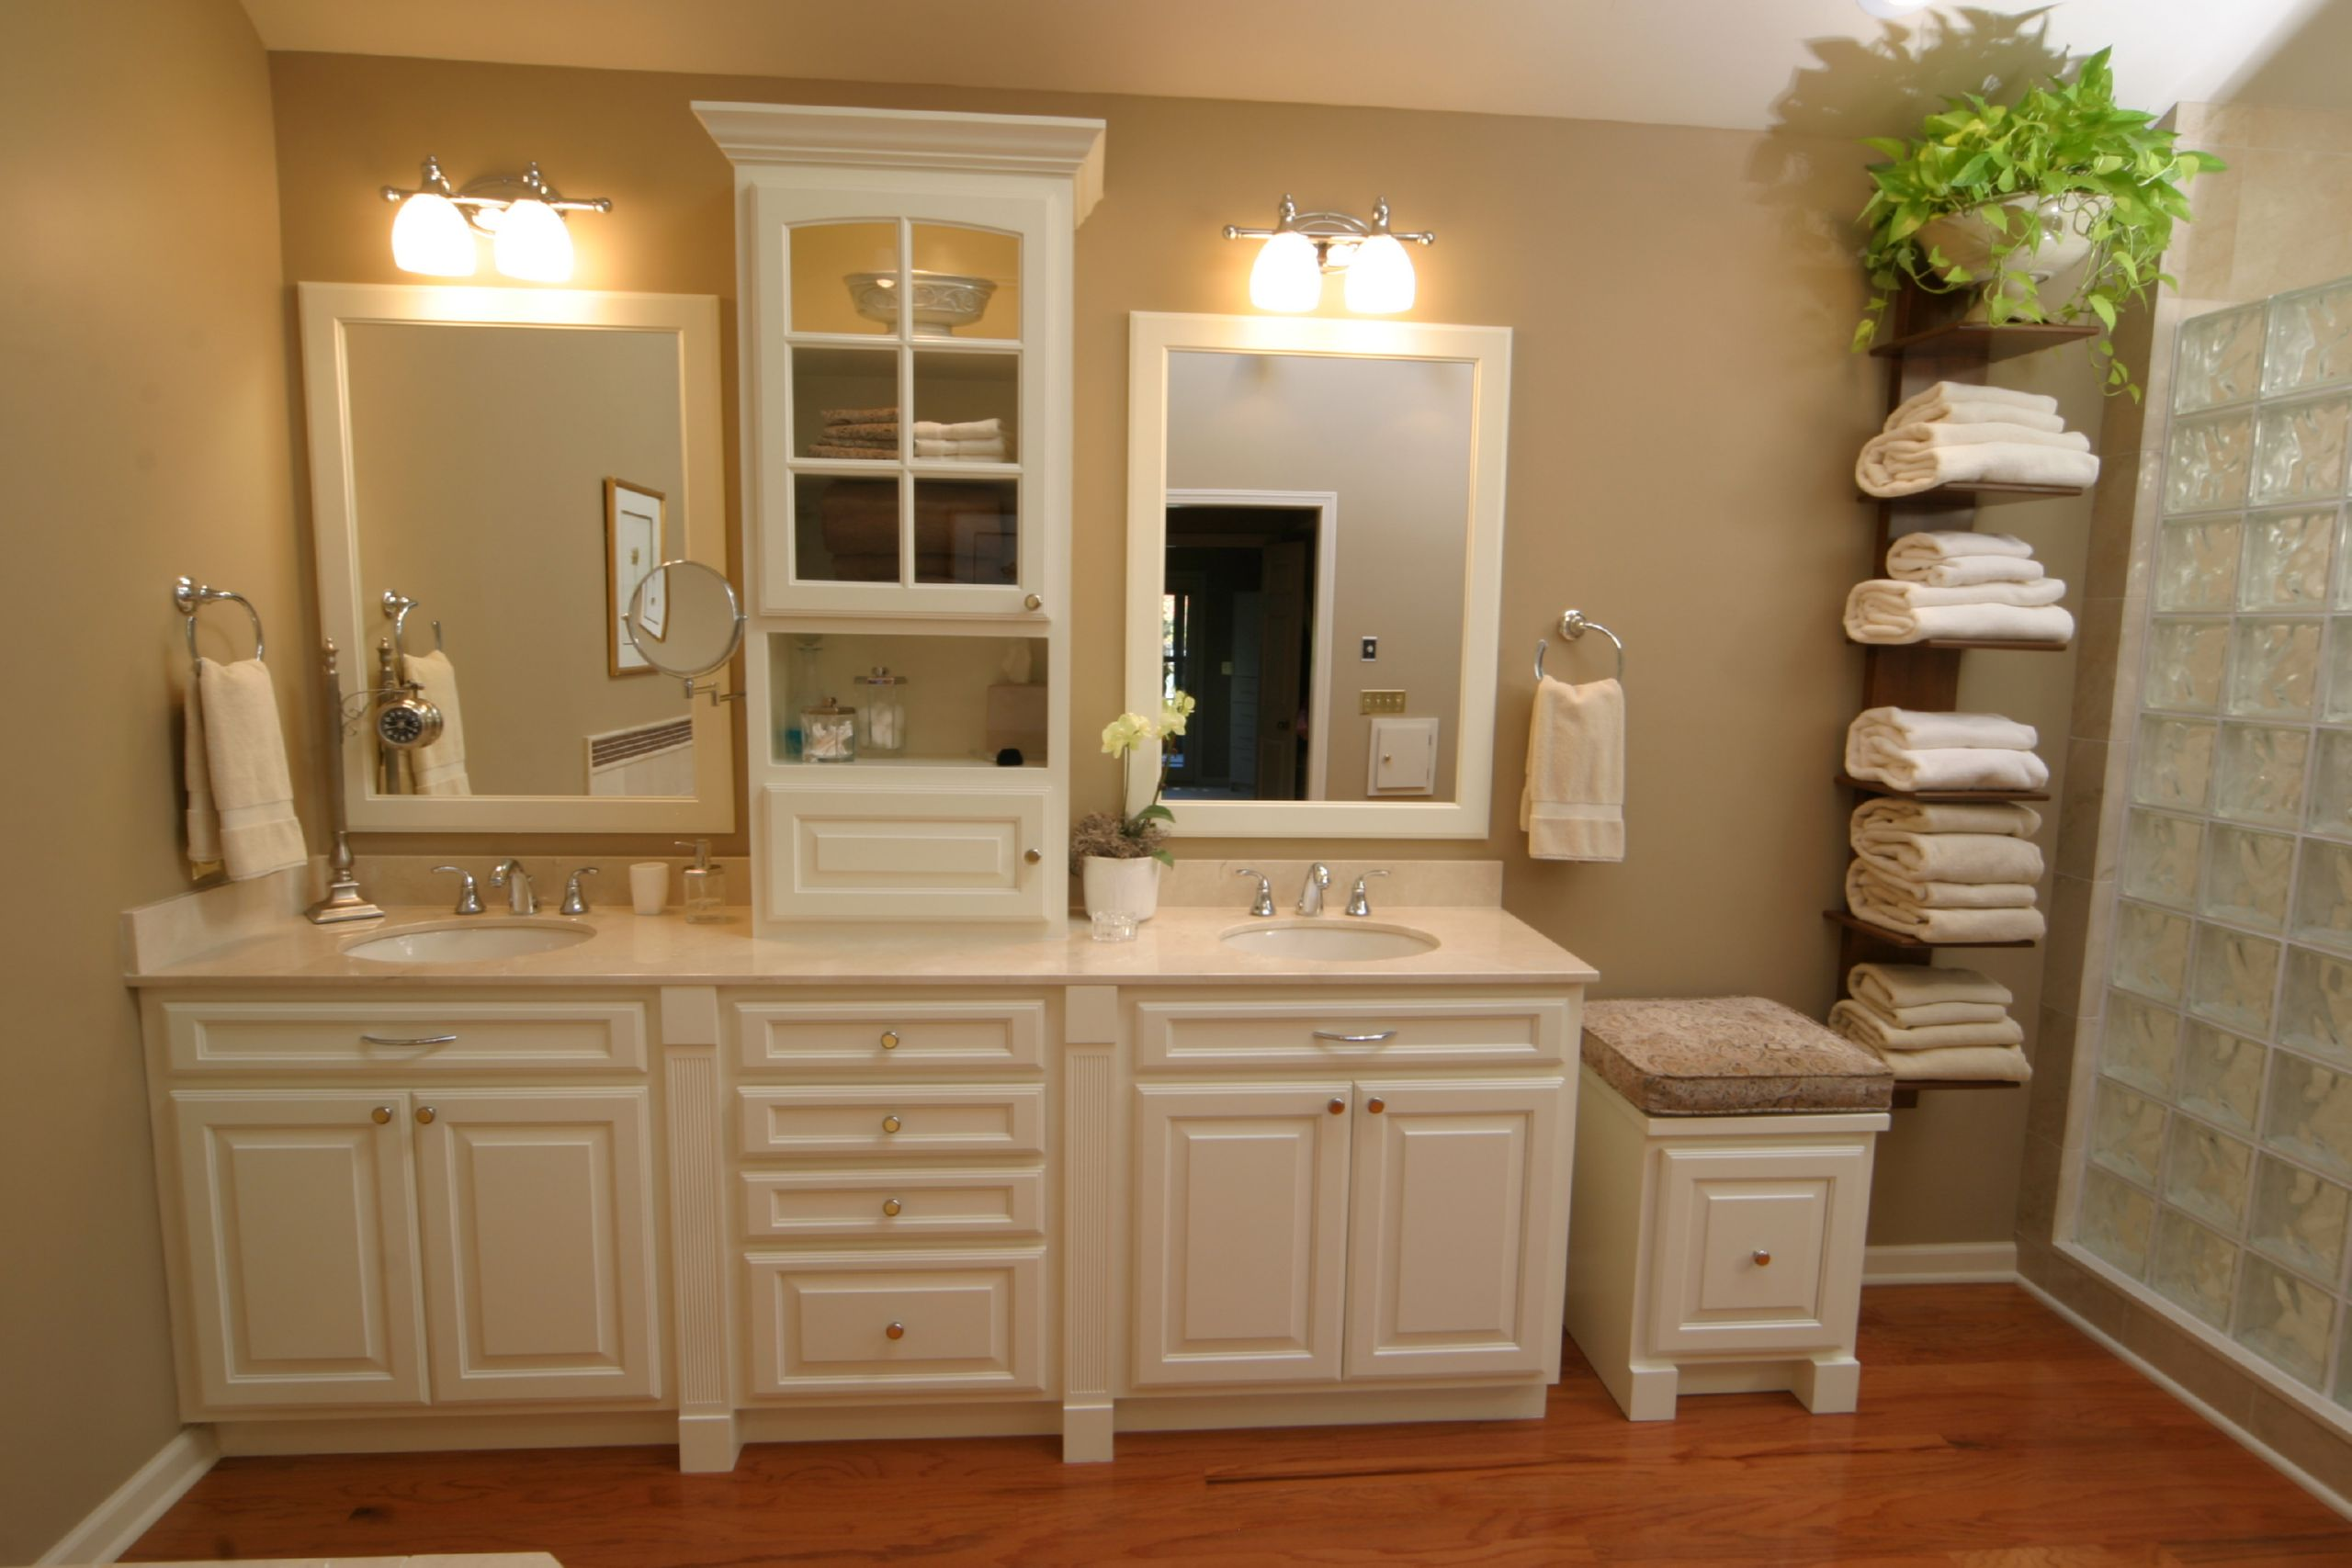 Bathroom remodeling tips njw construction for Cupboard renovation ideas